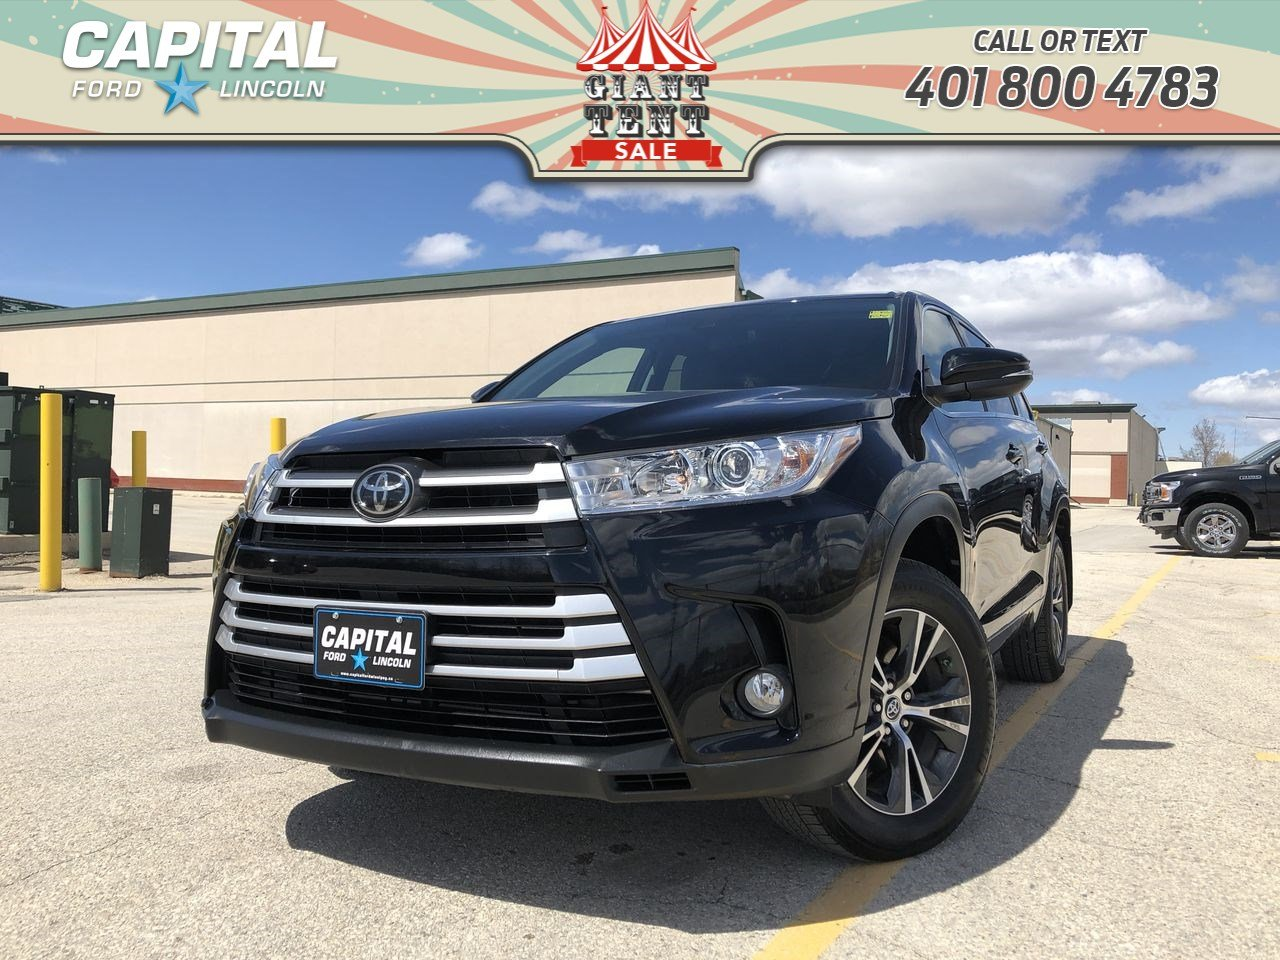 Toyota Highlander Lease >> Pre Owned 2017 Toyota Highlander Le Awd Local Lease Return Remote